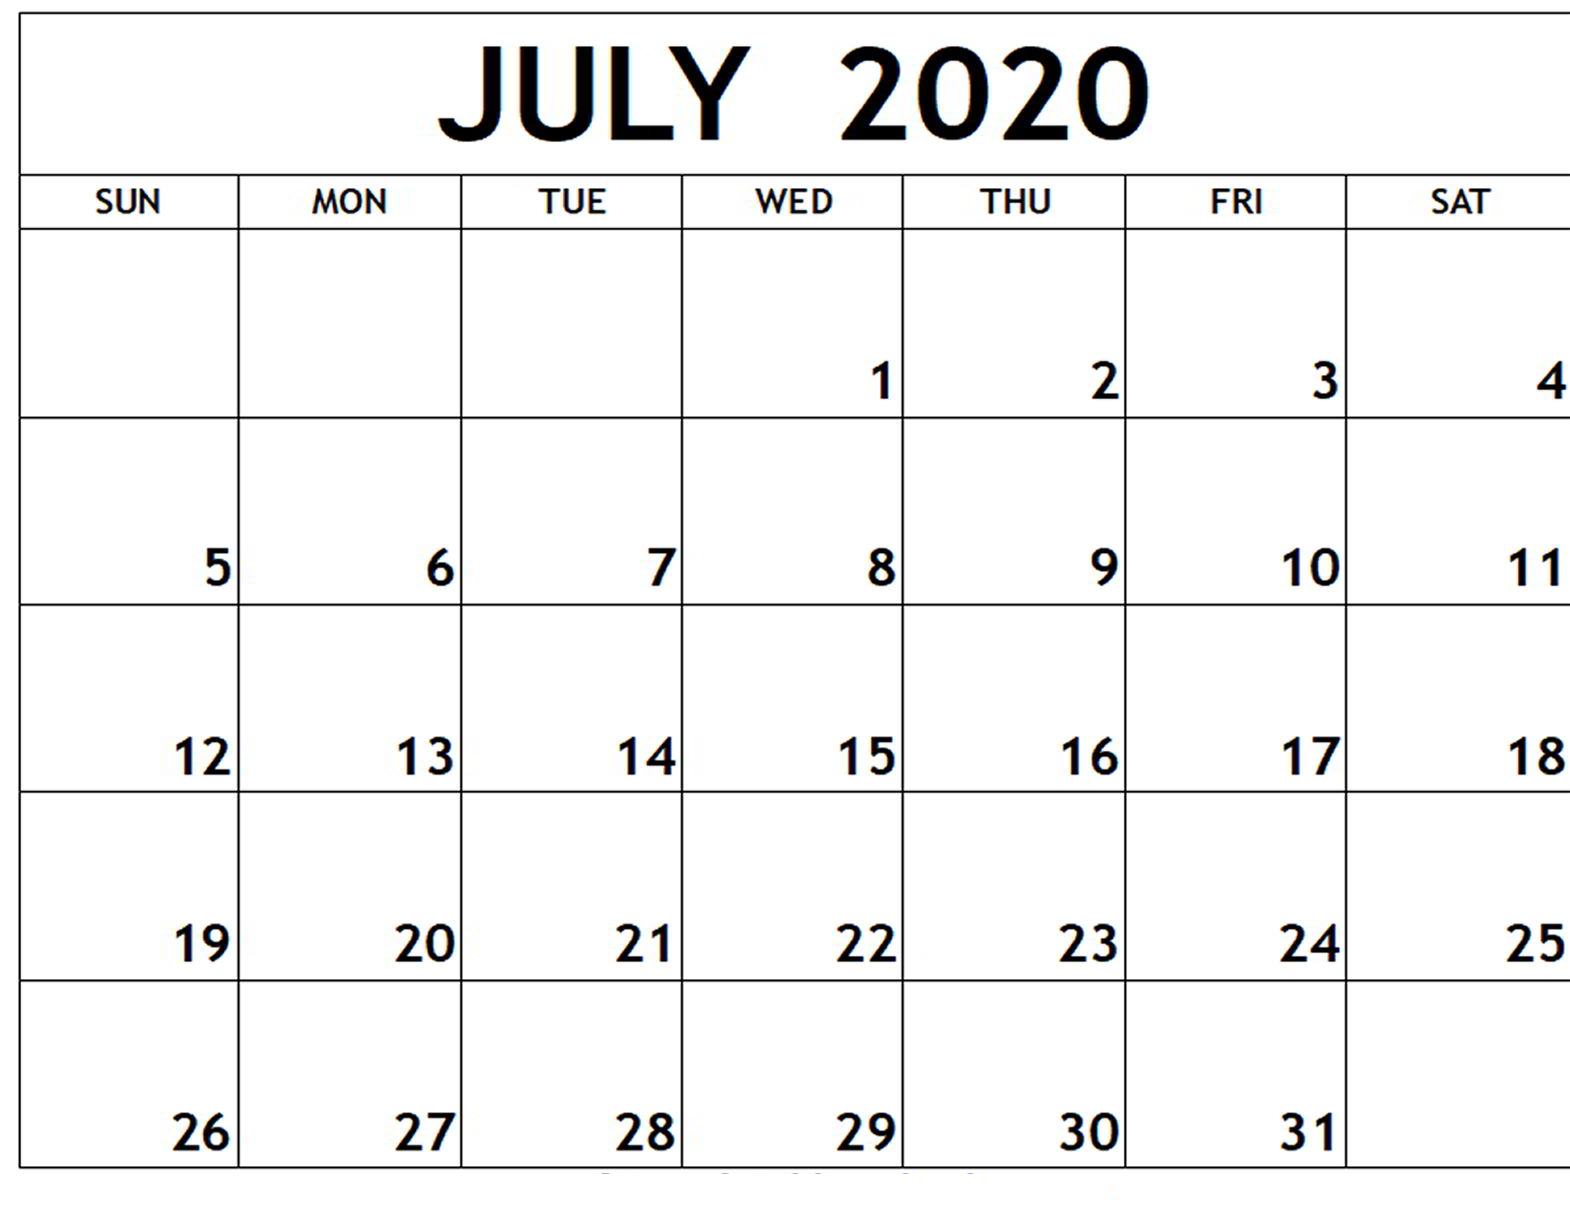 July 2020 Calendar Printable With Notes | 12 Month Printable